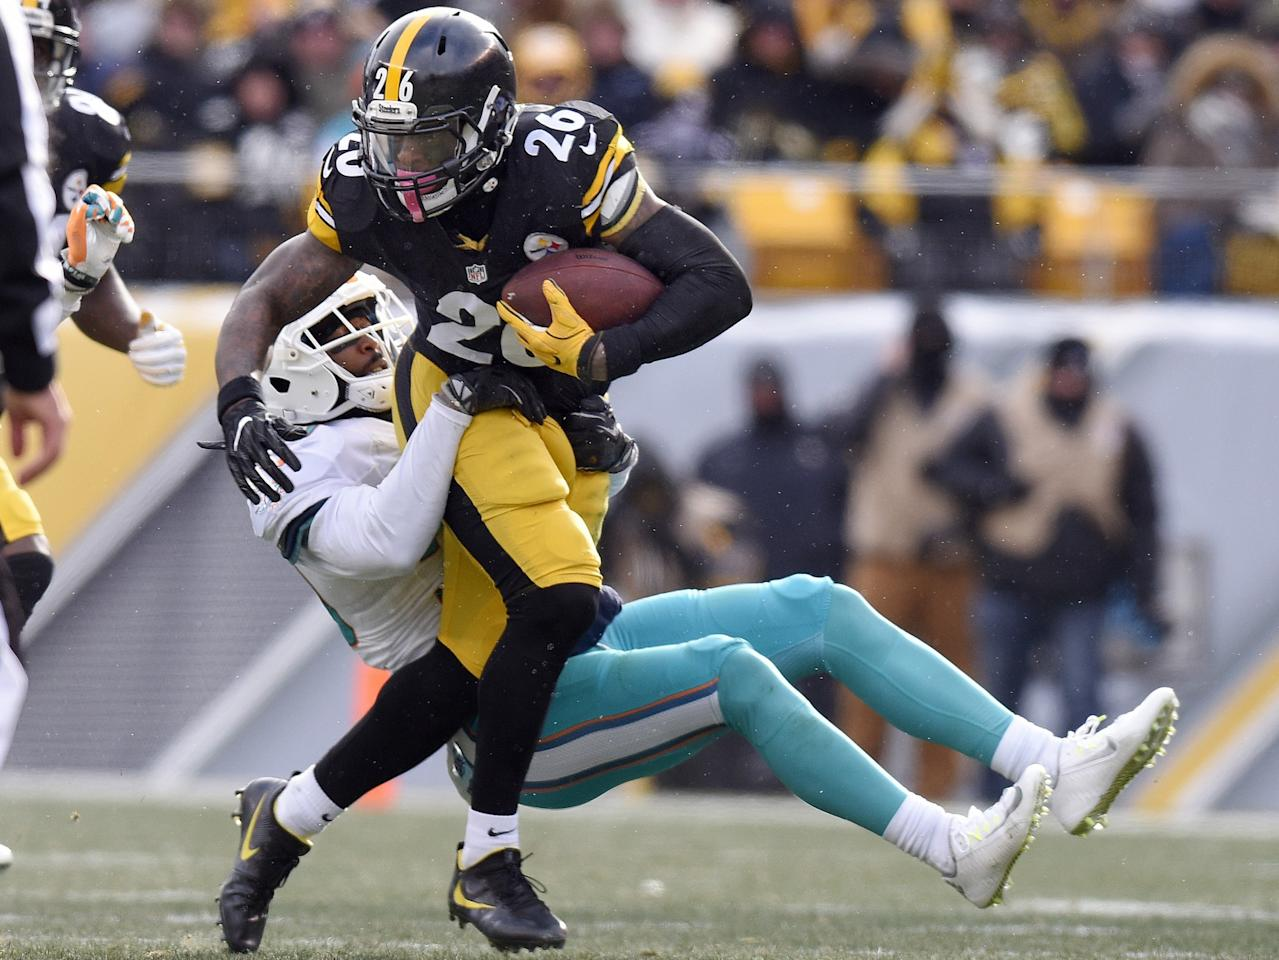 <p>Pittsburgh Steelers running back Le'Veon Bell (26) runs through a tackle by Miami Dolphins free safety Bacarri Rambo during the first half of an AFC wild-card in Pittsburgh, Jan. 8, 2017. Bell has rewritten the record books once again, breaking the franchise's single-game postseason rushing mark in Sunday's 30-12 AFC wild-card victory. (Photo: Don Wright/AP) </p>